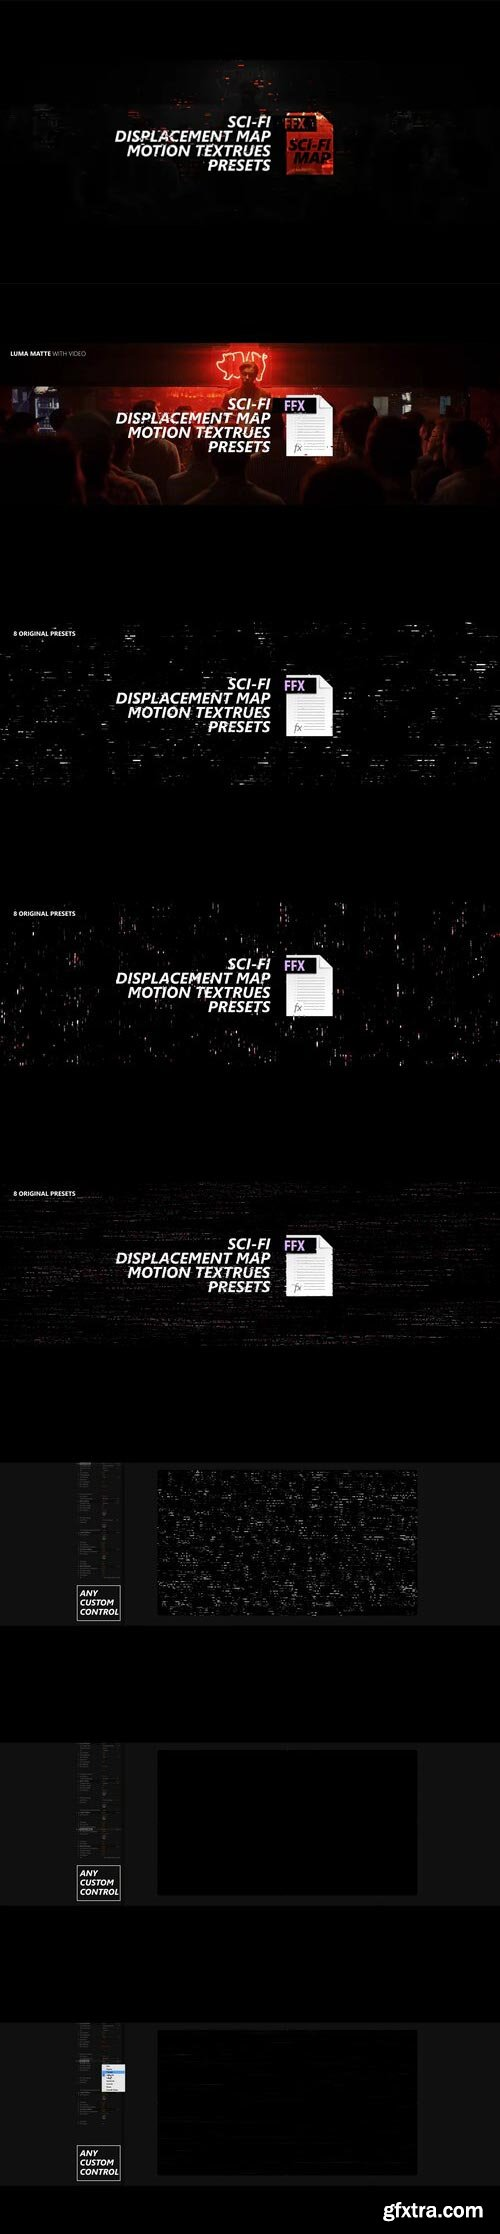 Videohive - Sci-fi Displacement Map Motion Textrues Presets - 27187546